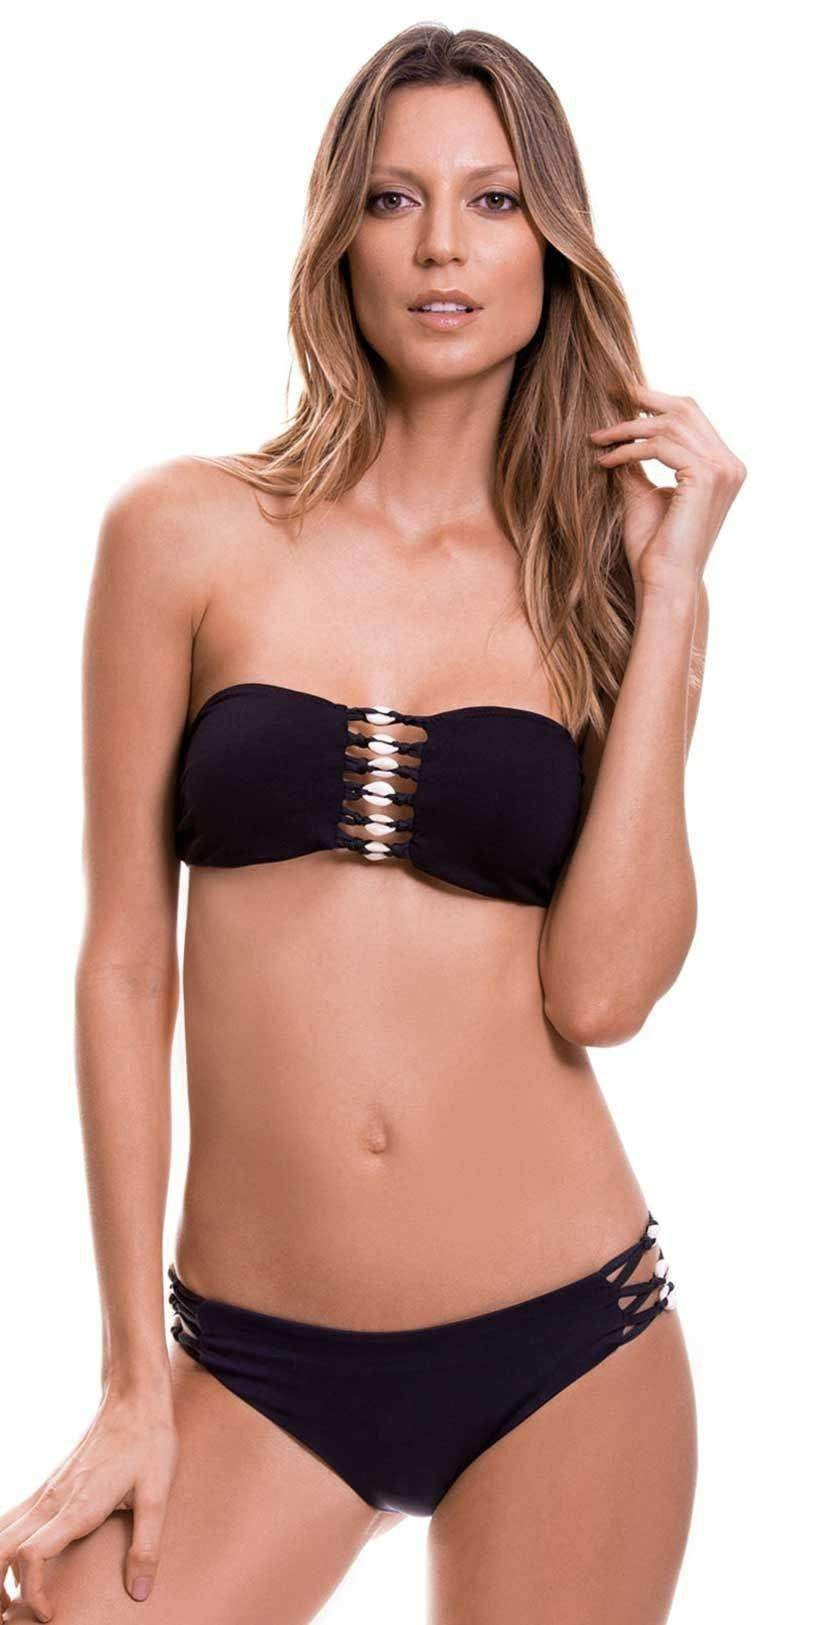 Milonga Shell Bandeau Top in Basic Black 069: